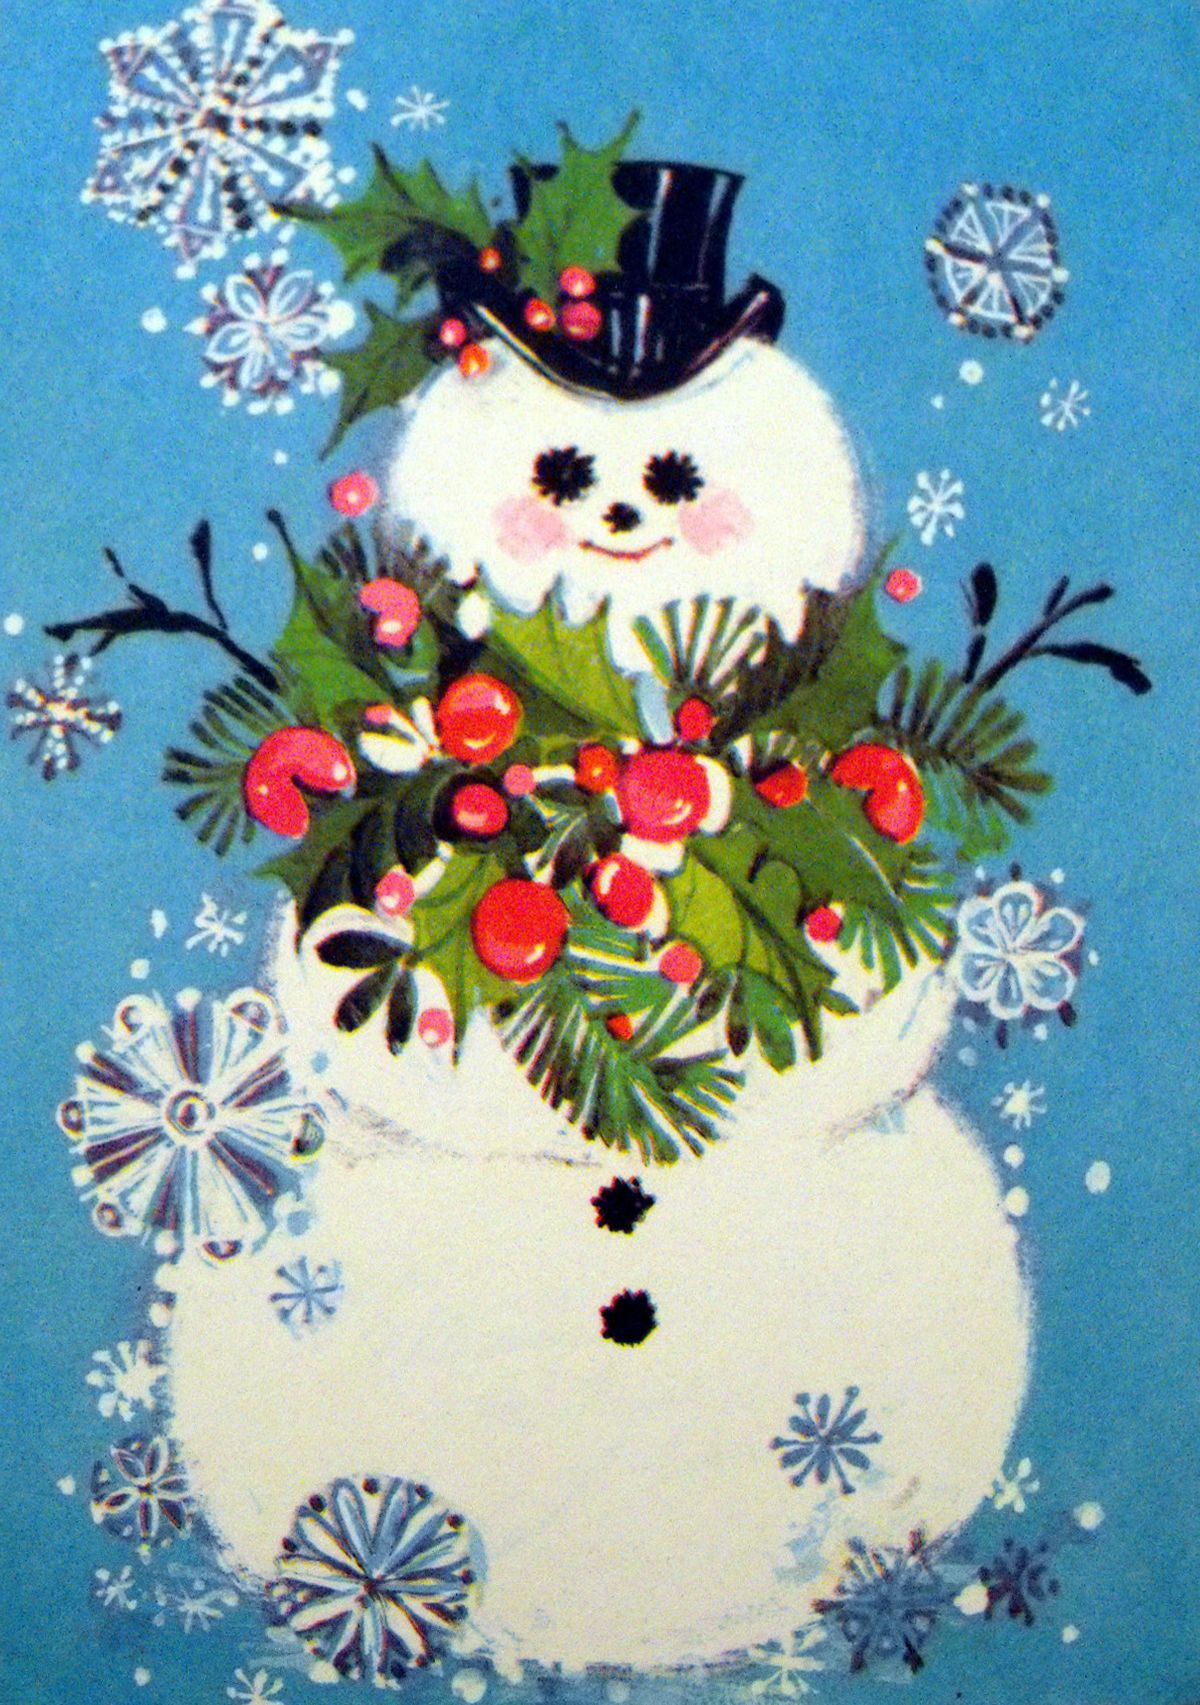 Vintage Christmas Card→ For more, please visit me at: www.facebook ...